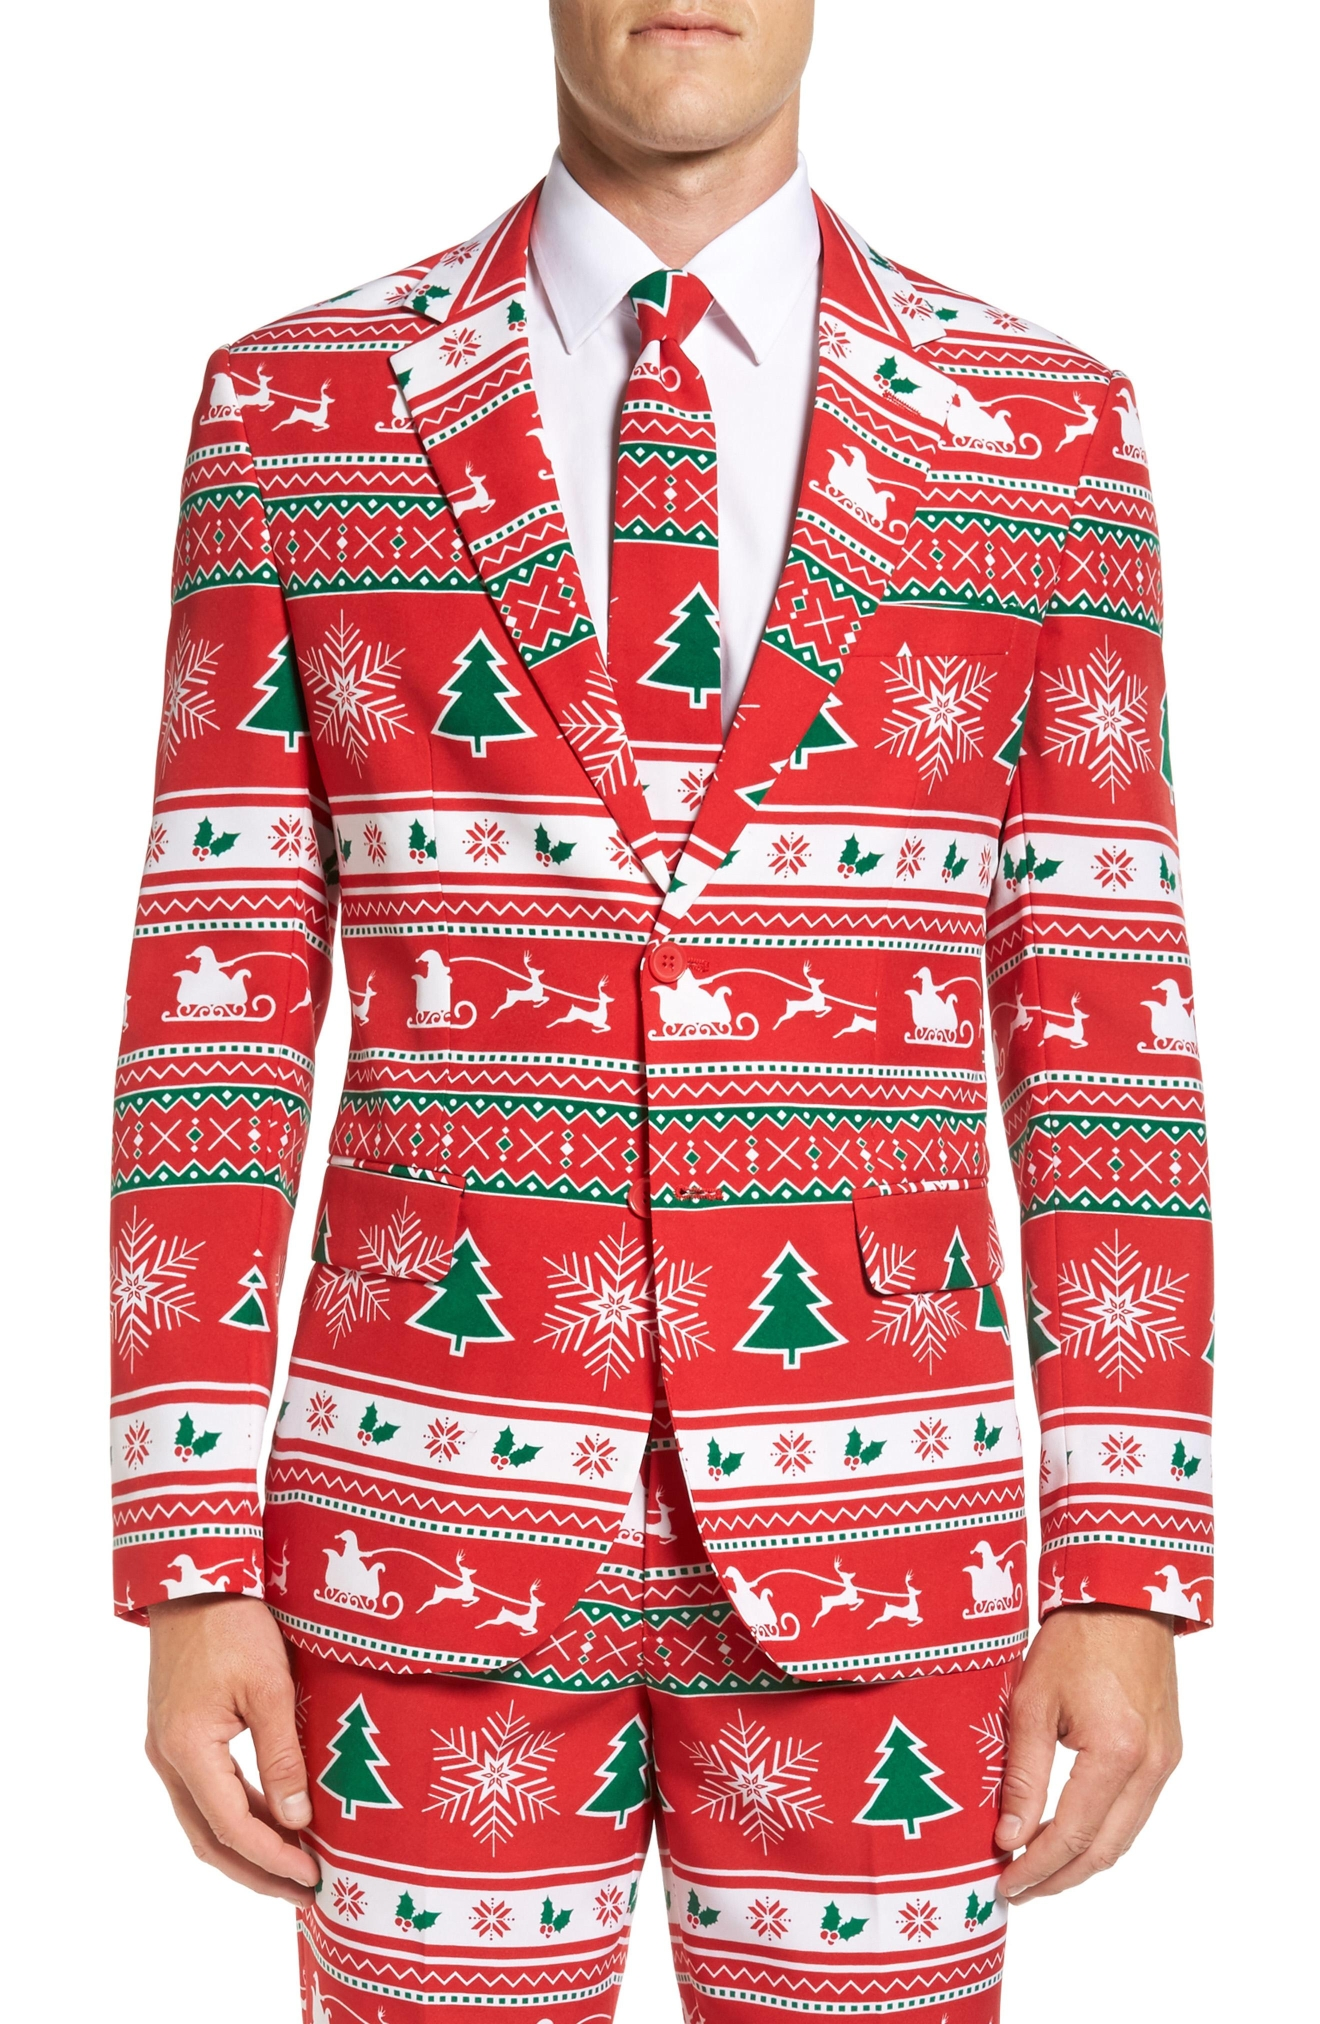 OppoSuits 'Winter Wonderland' Trim Fit Two-Piece Suit with Tie, $99.99(Photo: Nordstrom)